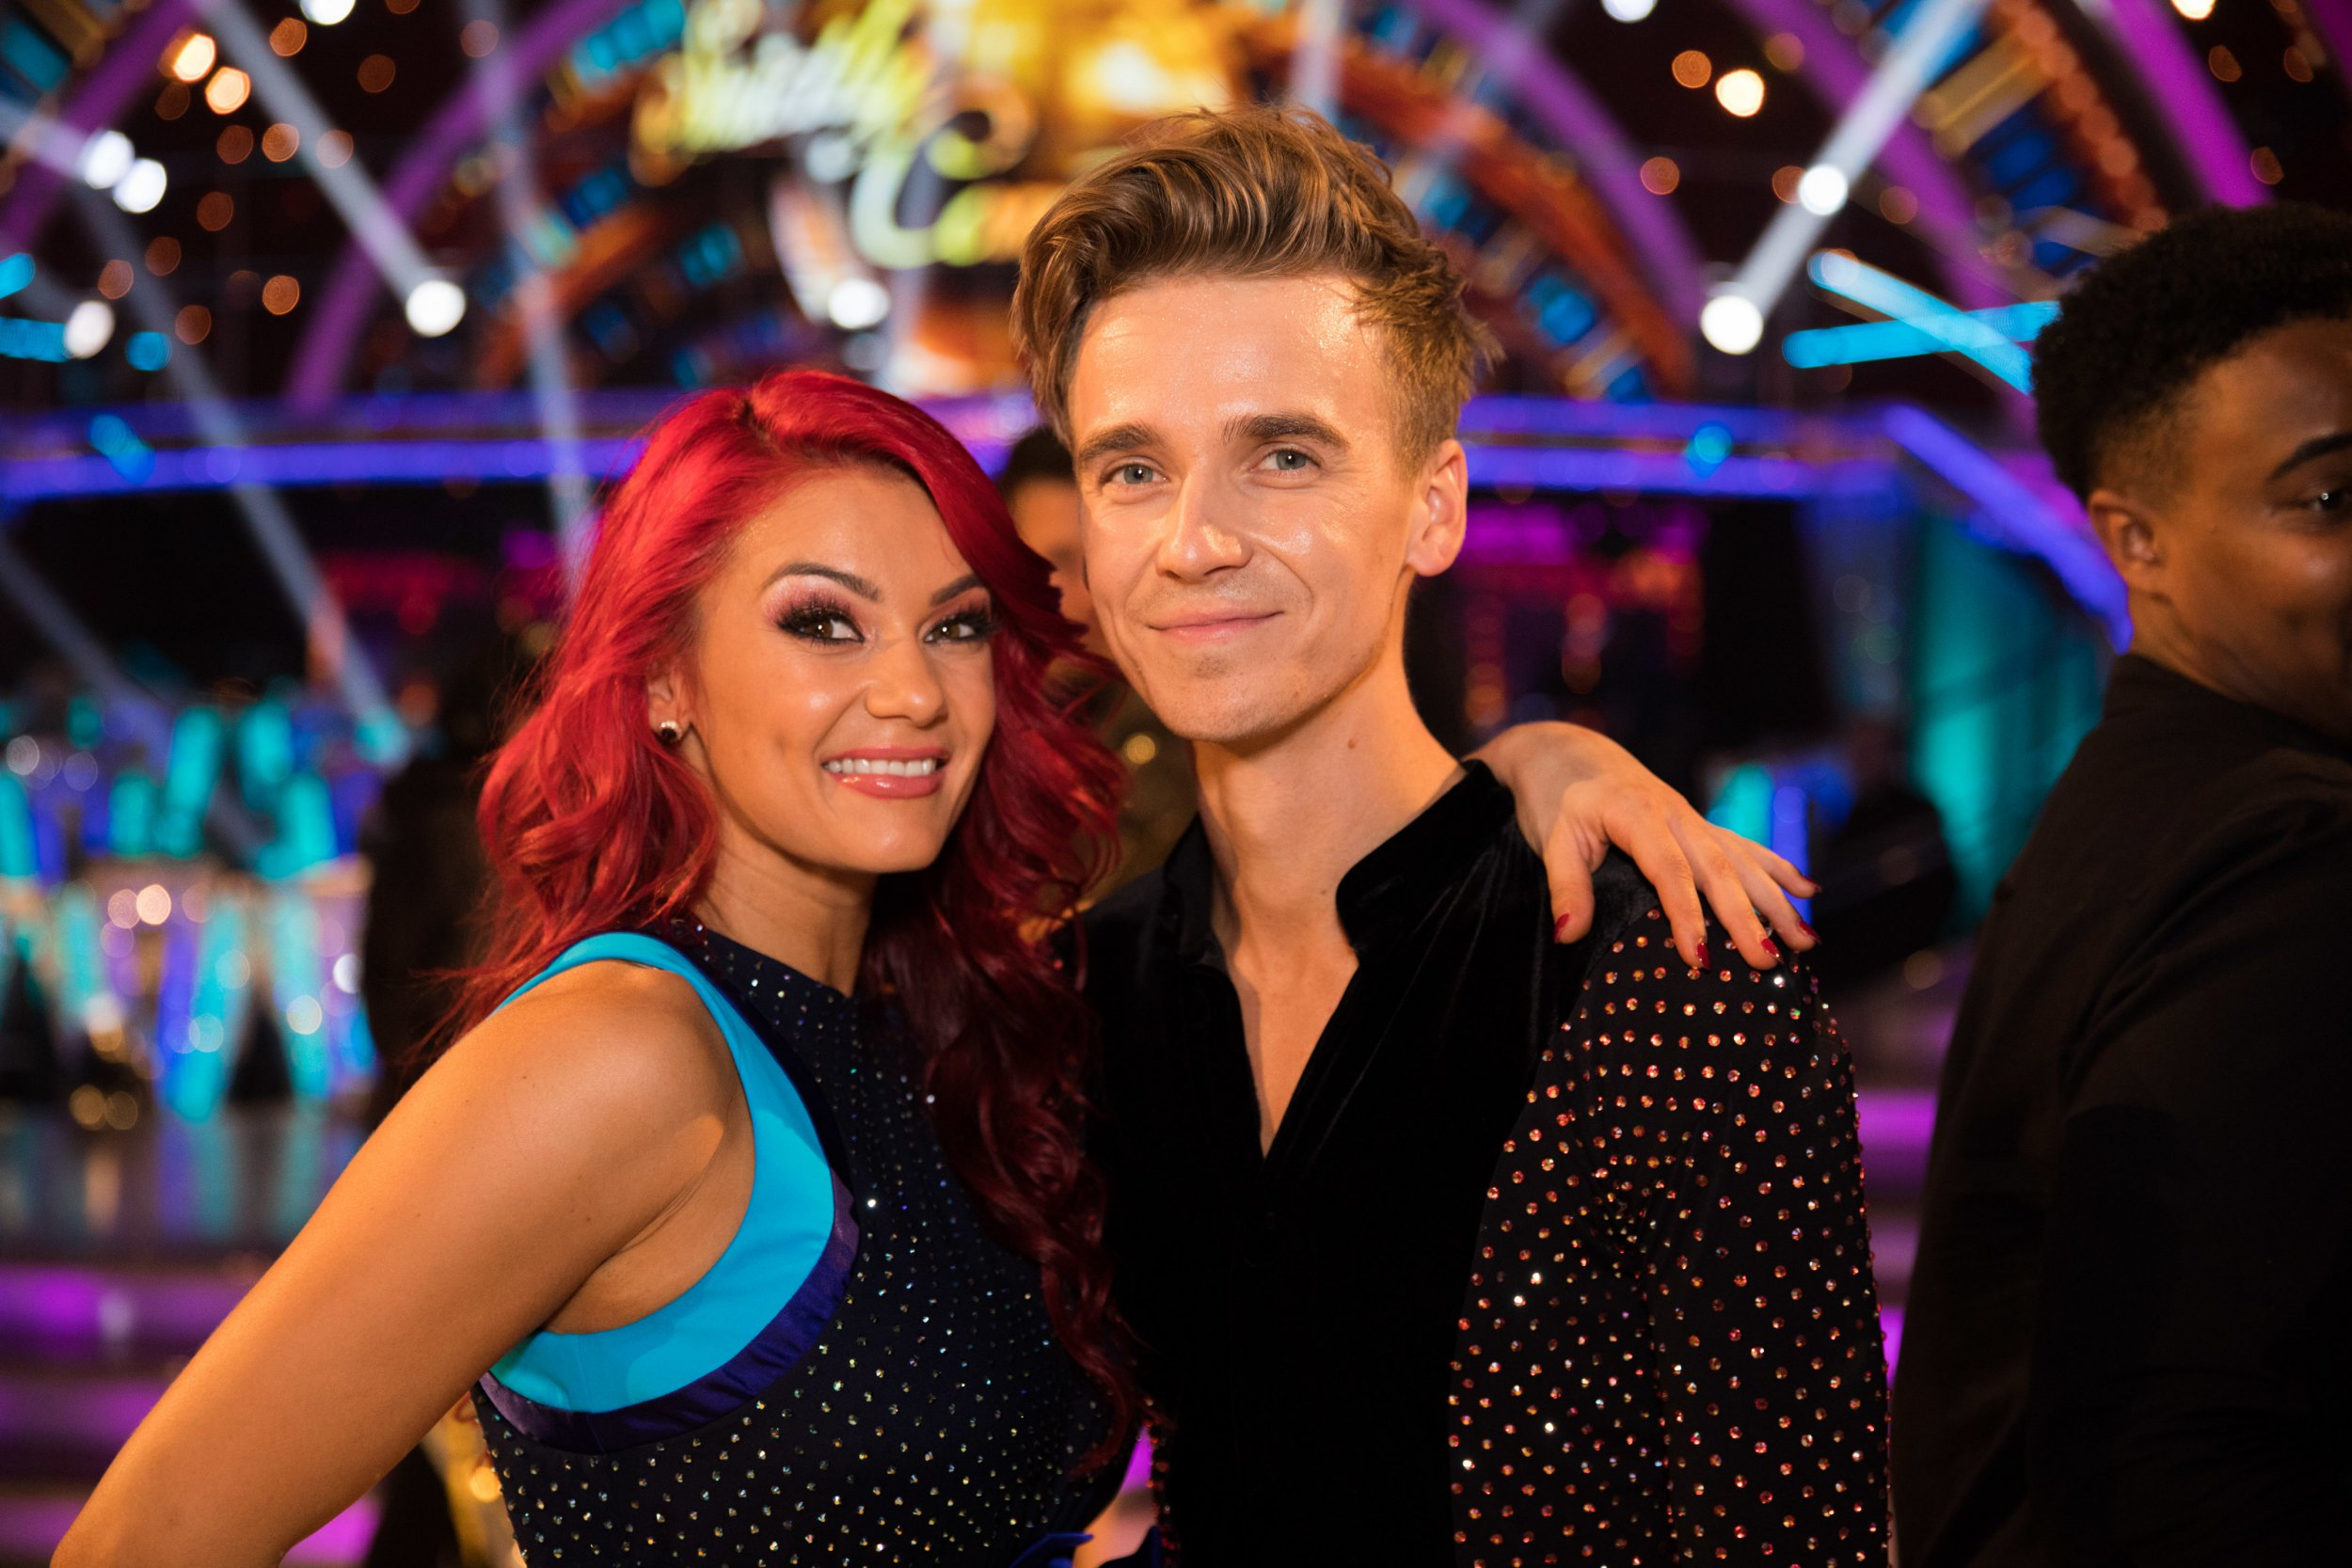 'Strictly curse' claims another as Dianne Buswell splits with Anthony Quinlan